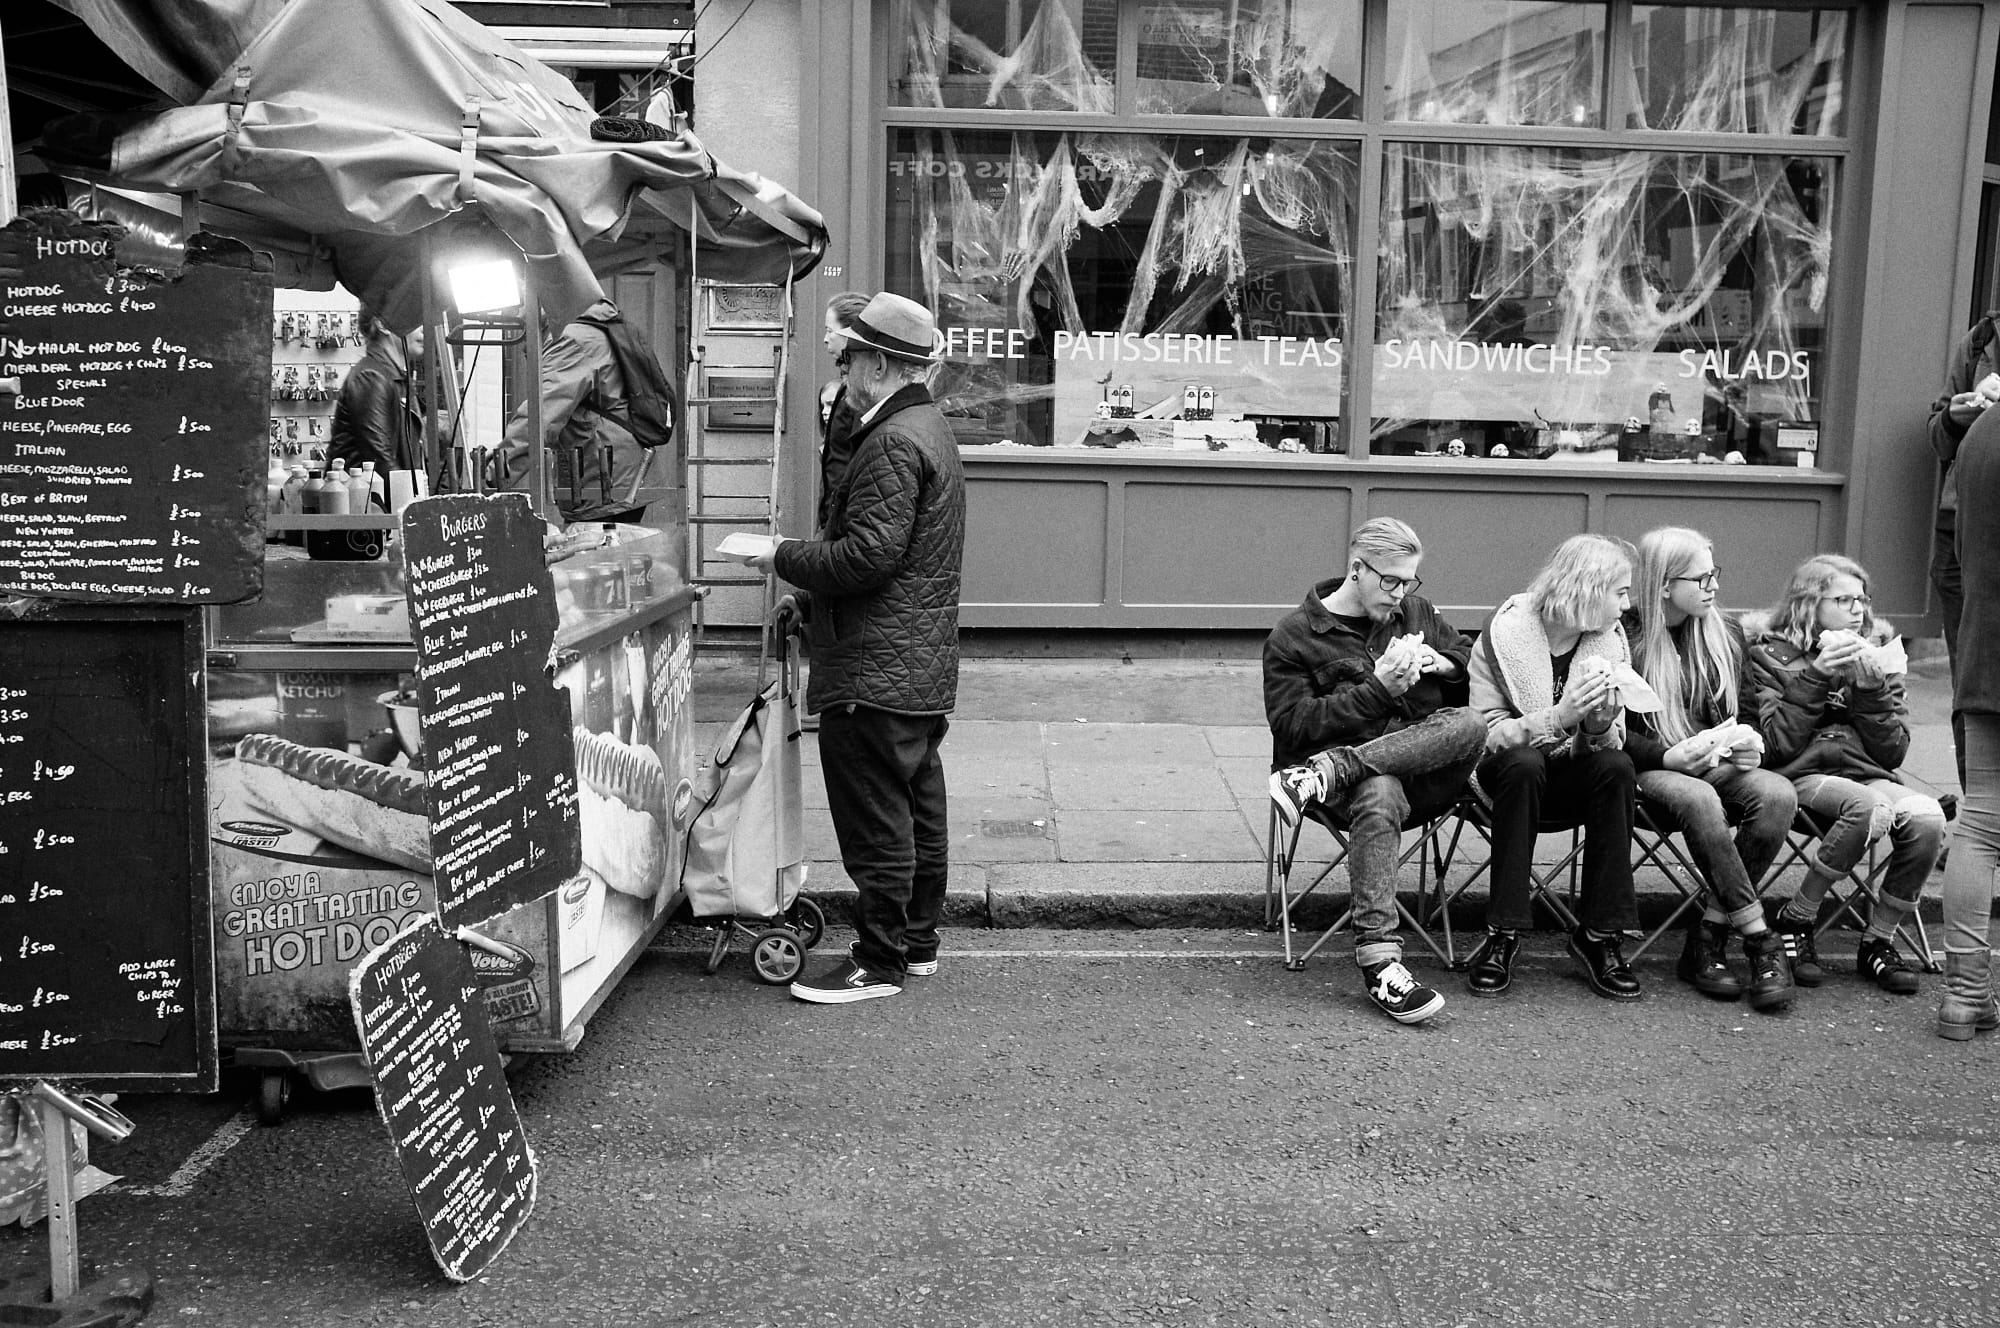 people seated eating street food